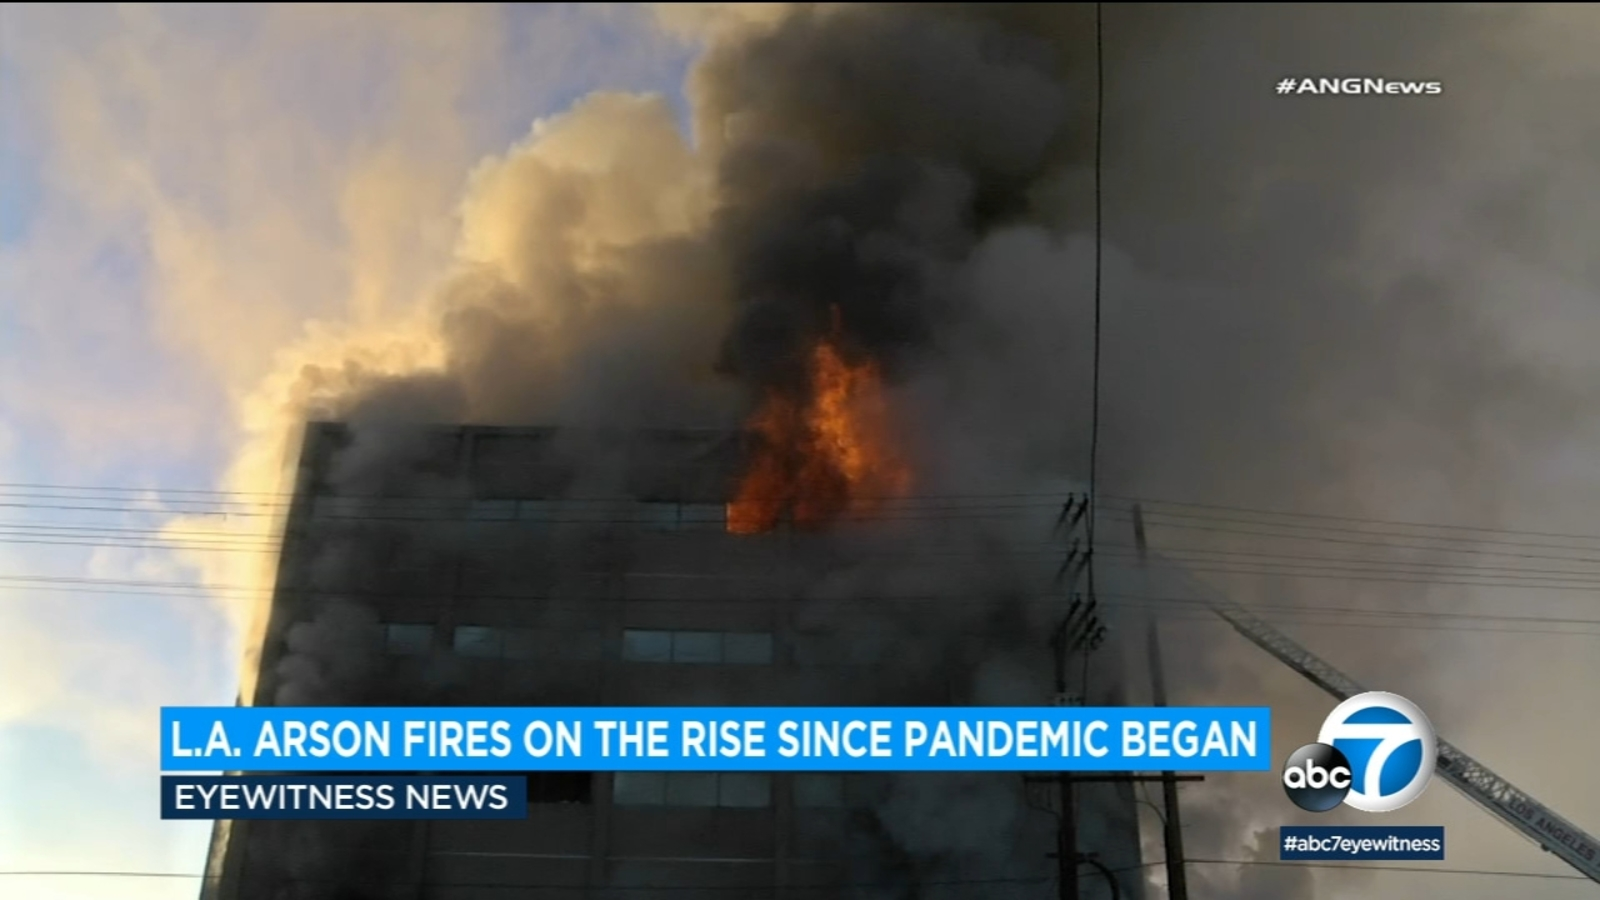 LA arson fires increasing amid COVID-19 pandemic, LAPD data shows